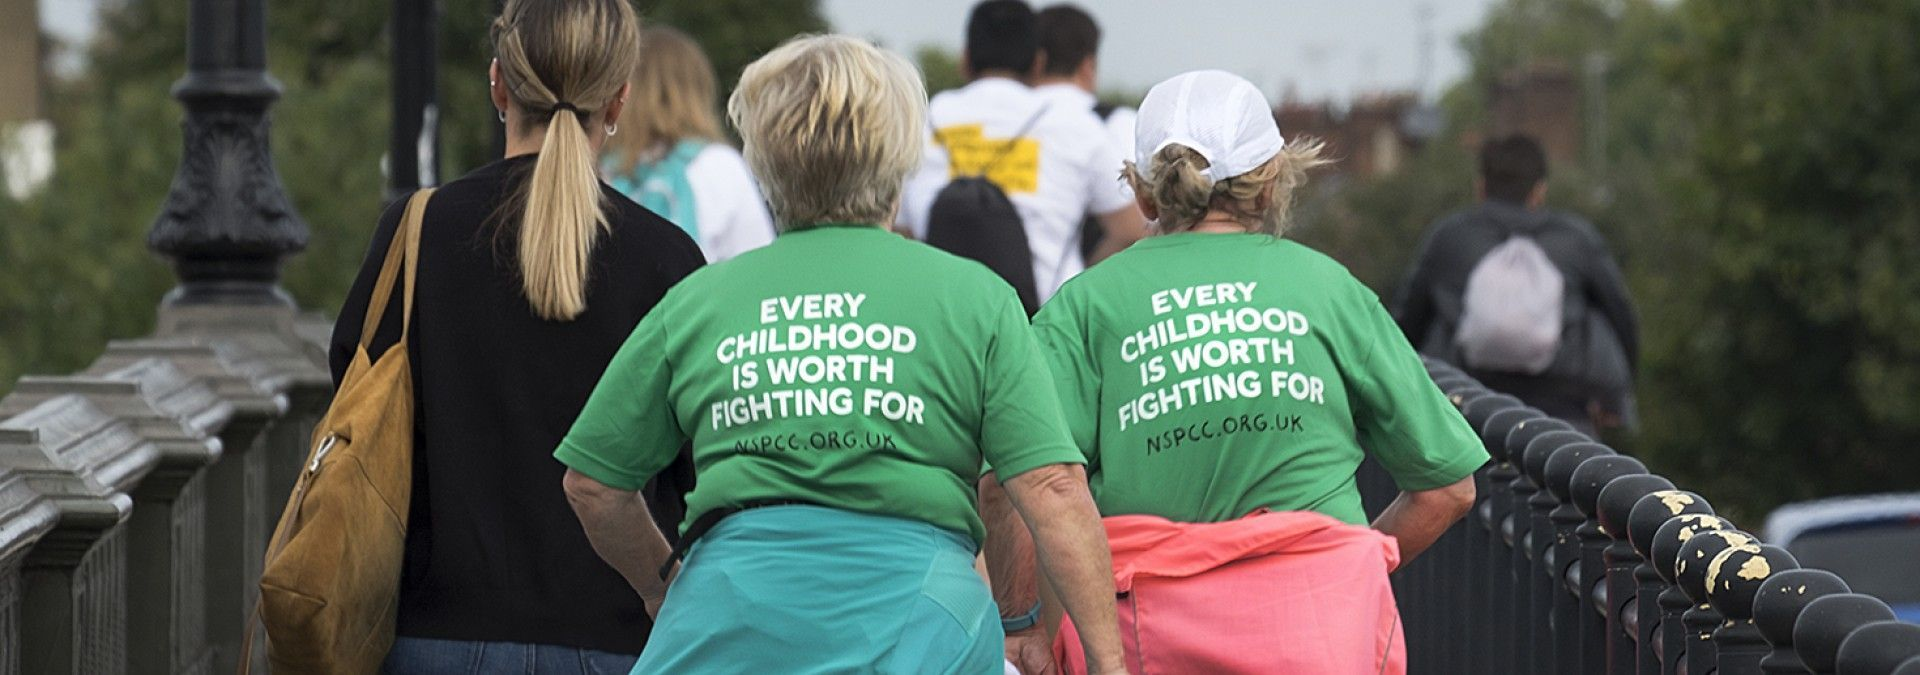 Marathon_Walk_London_NSPCC_Supporters.jpg